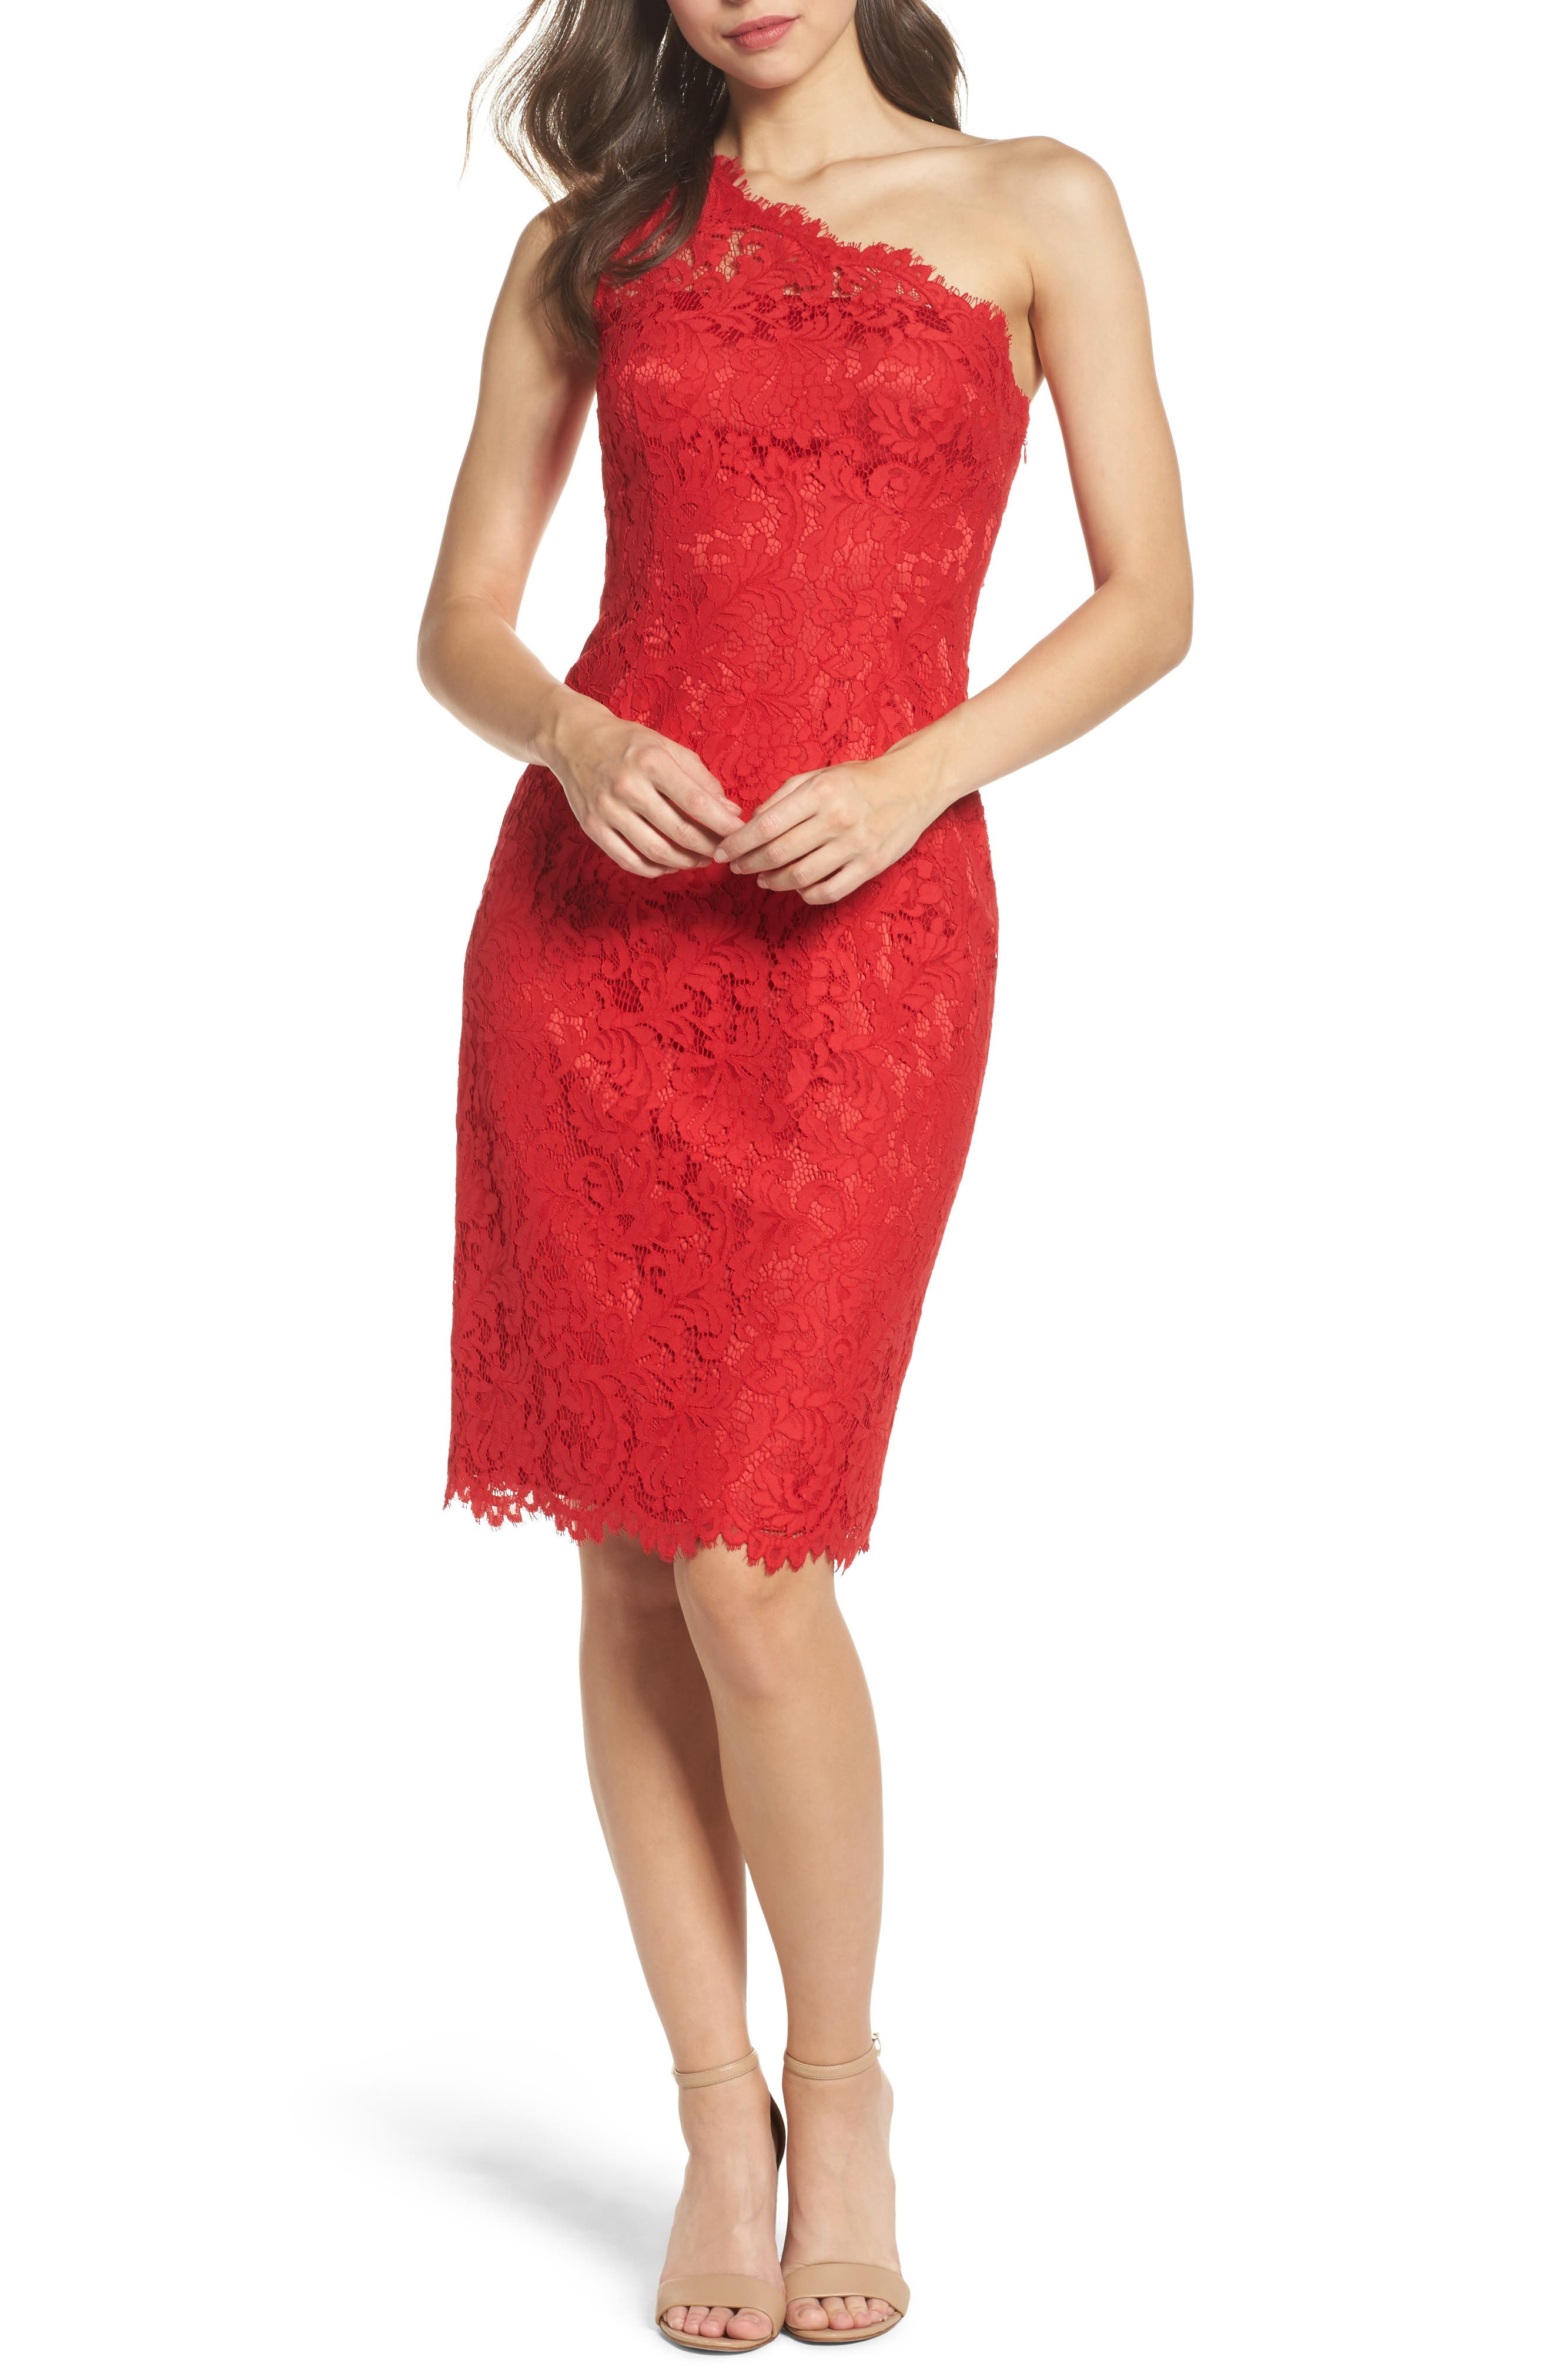 Alternate Image 1 Selected - Eliza J One-Shoulder Lace Dress (Regular & Petite)